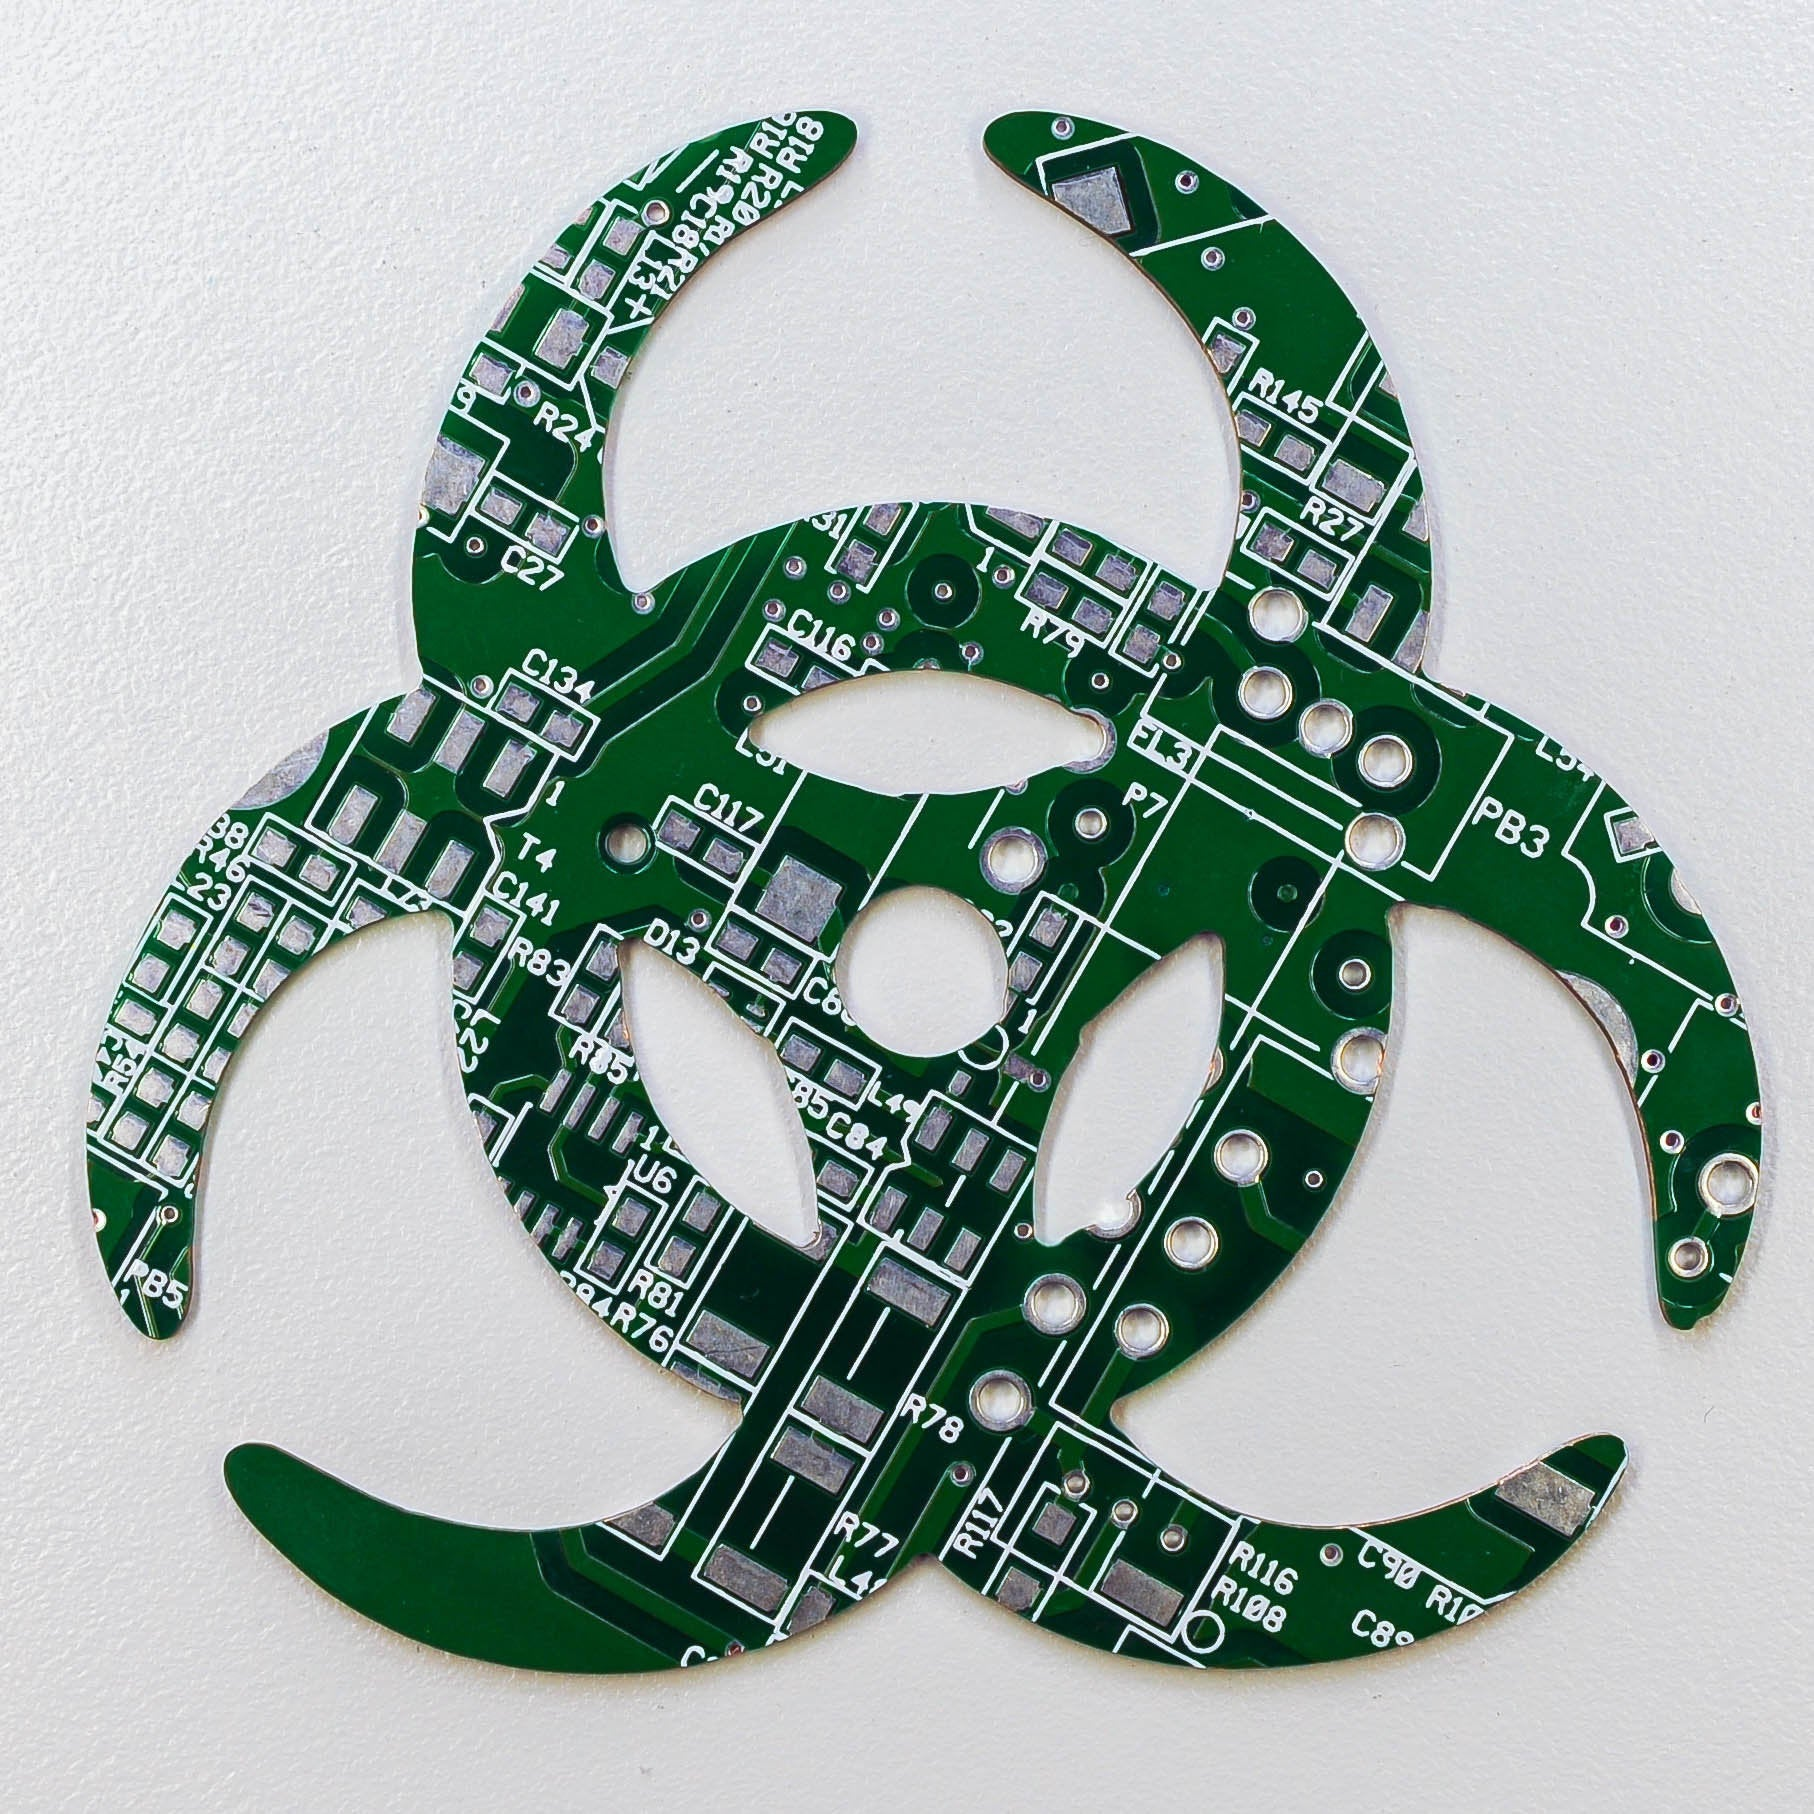 Circuit Board Bio Hazard - TechWears Ltd